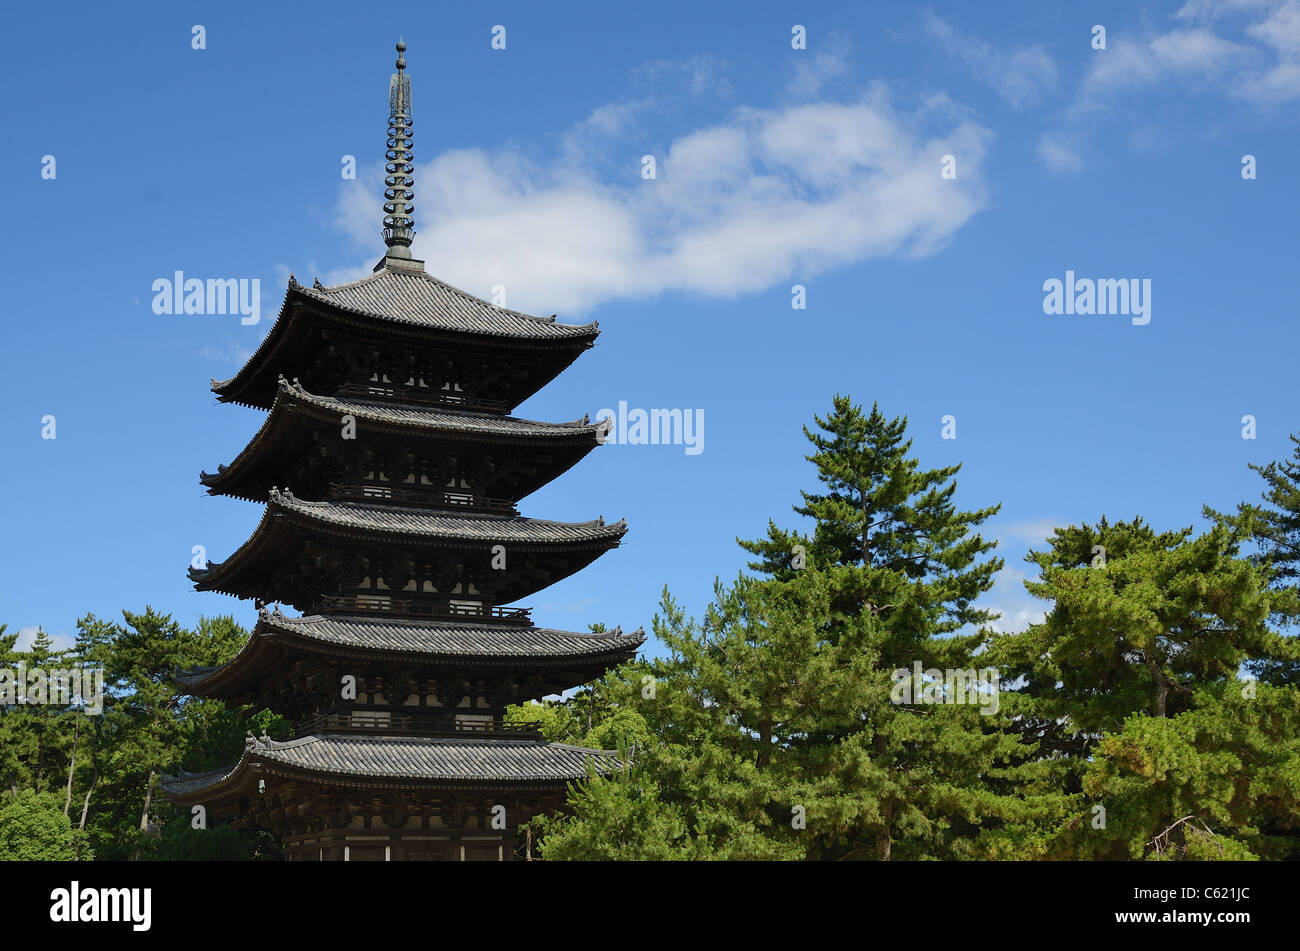 Kofuku-ji is one of the 8 Historic Monuments of Ancient Nara as designated by UNESCO in Nara, Japan. - Stock Image